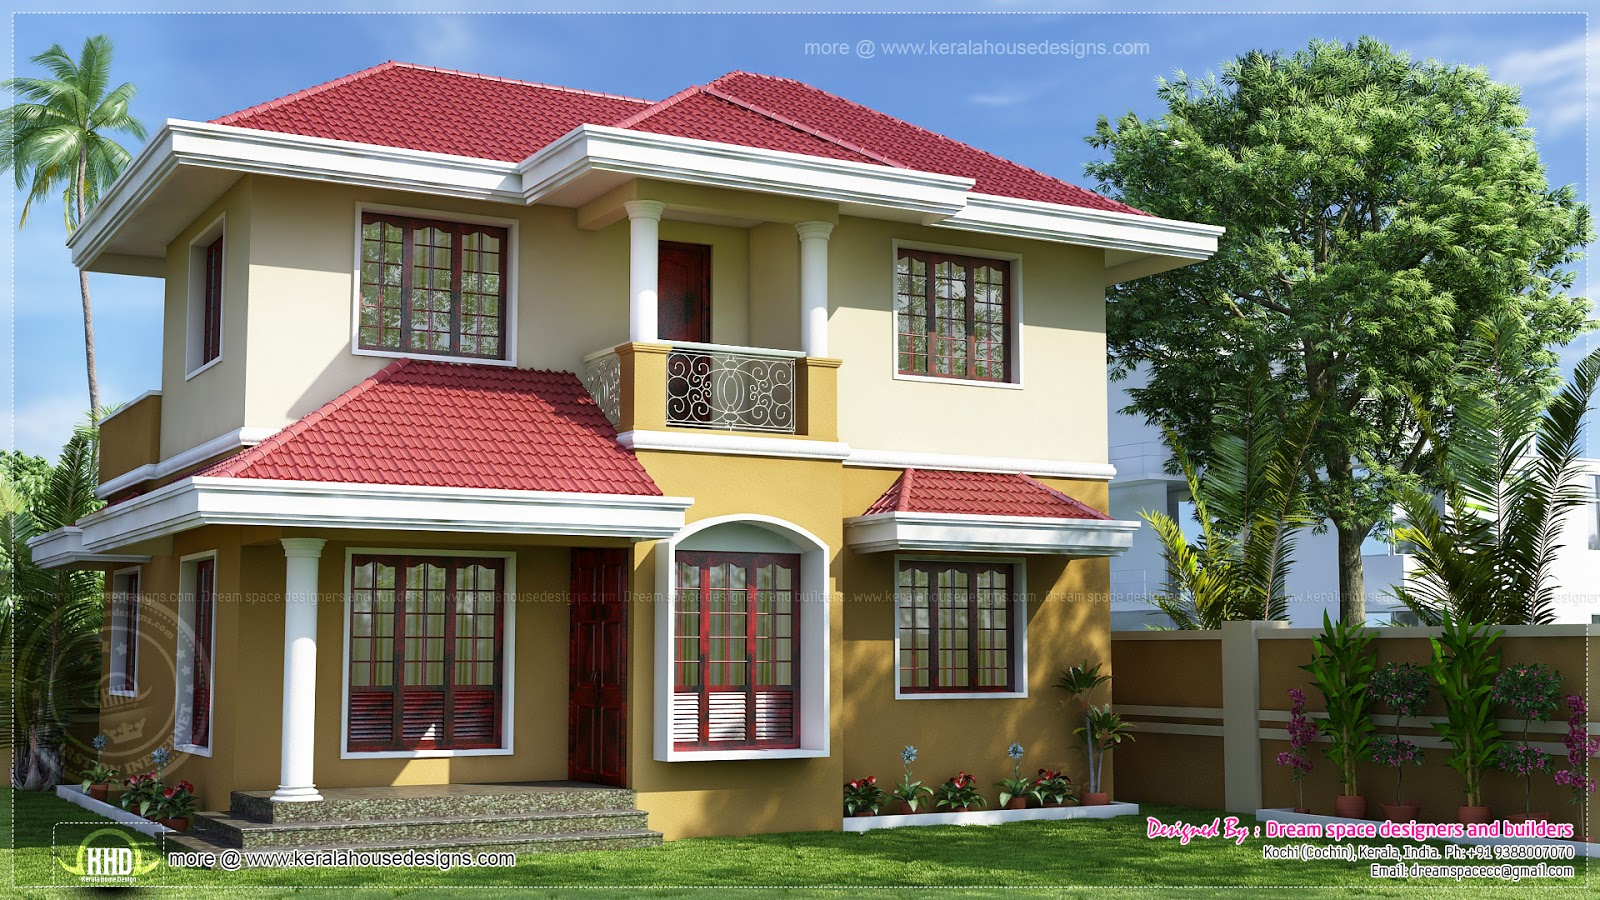 Villa with 3 bed appropriate in a 3 cents of land kerala for Plan villa r 2